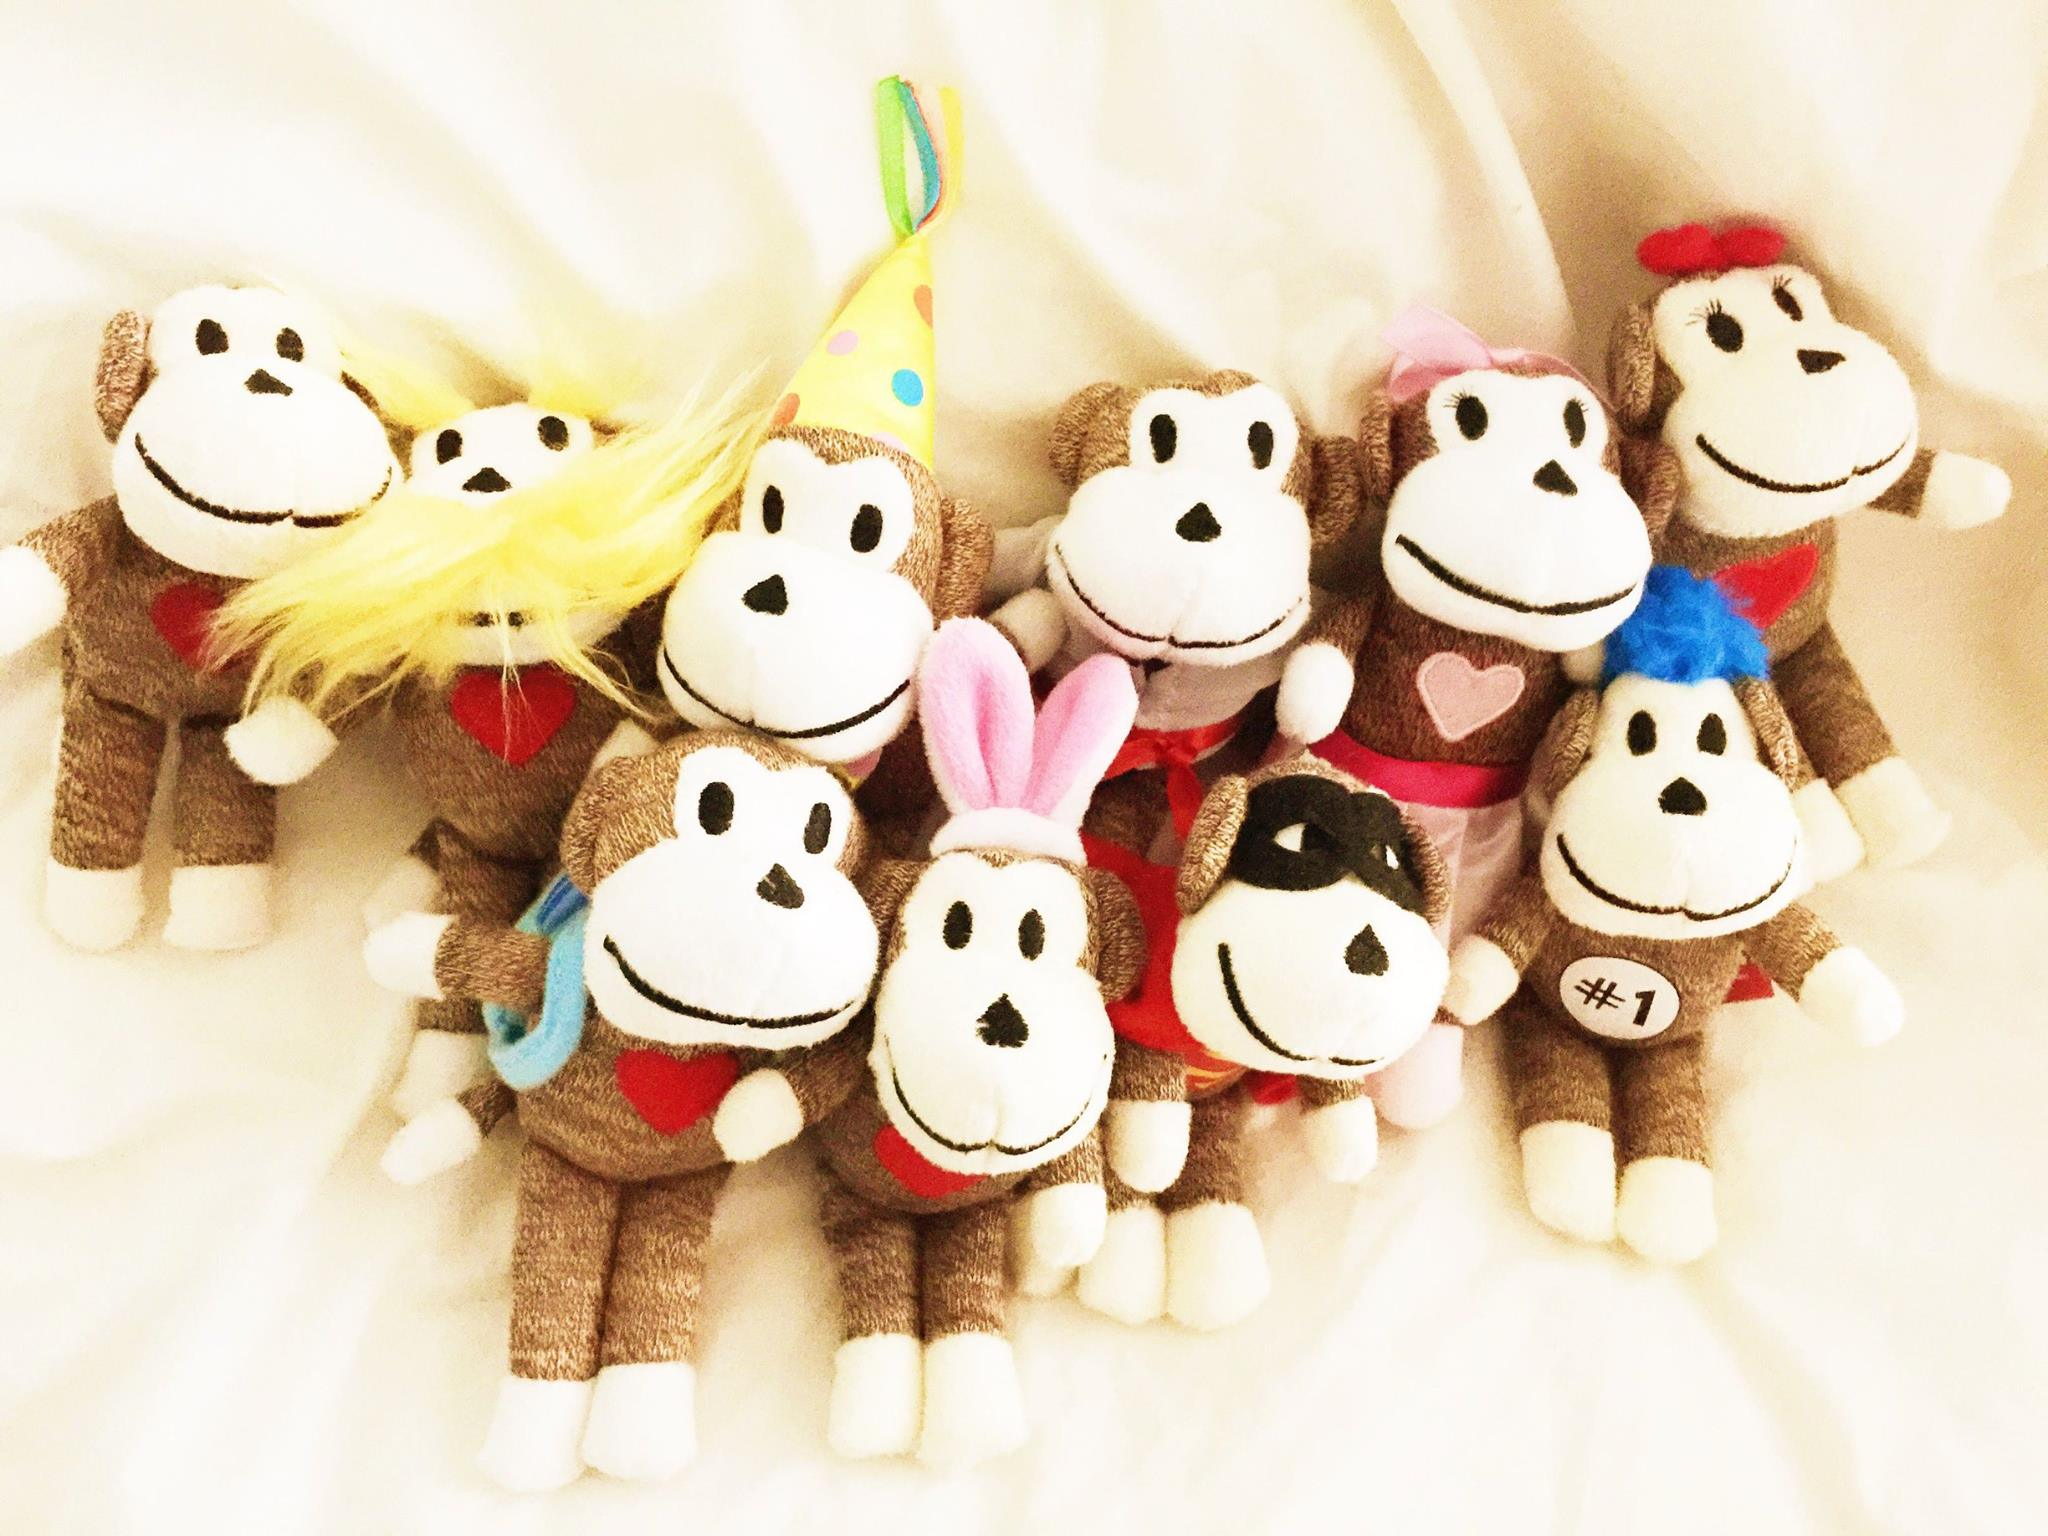 Spend $5 at a live sale and enter a drawing to win one of these monkeys!